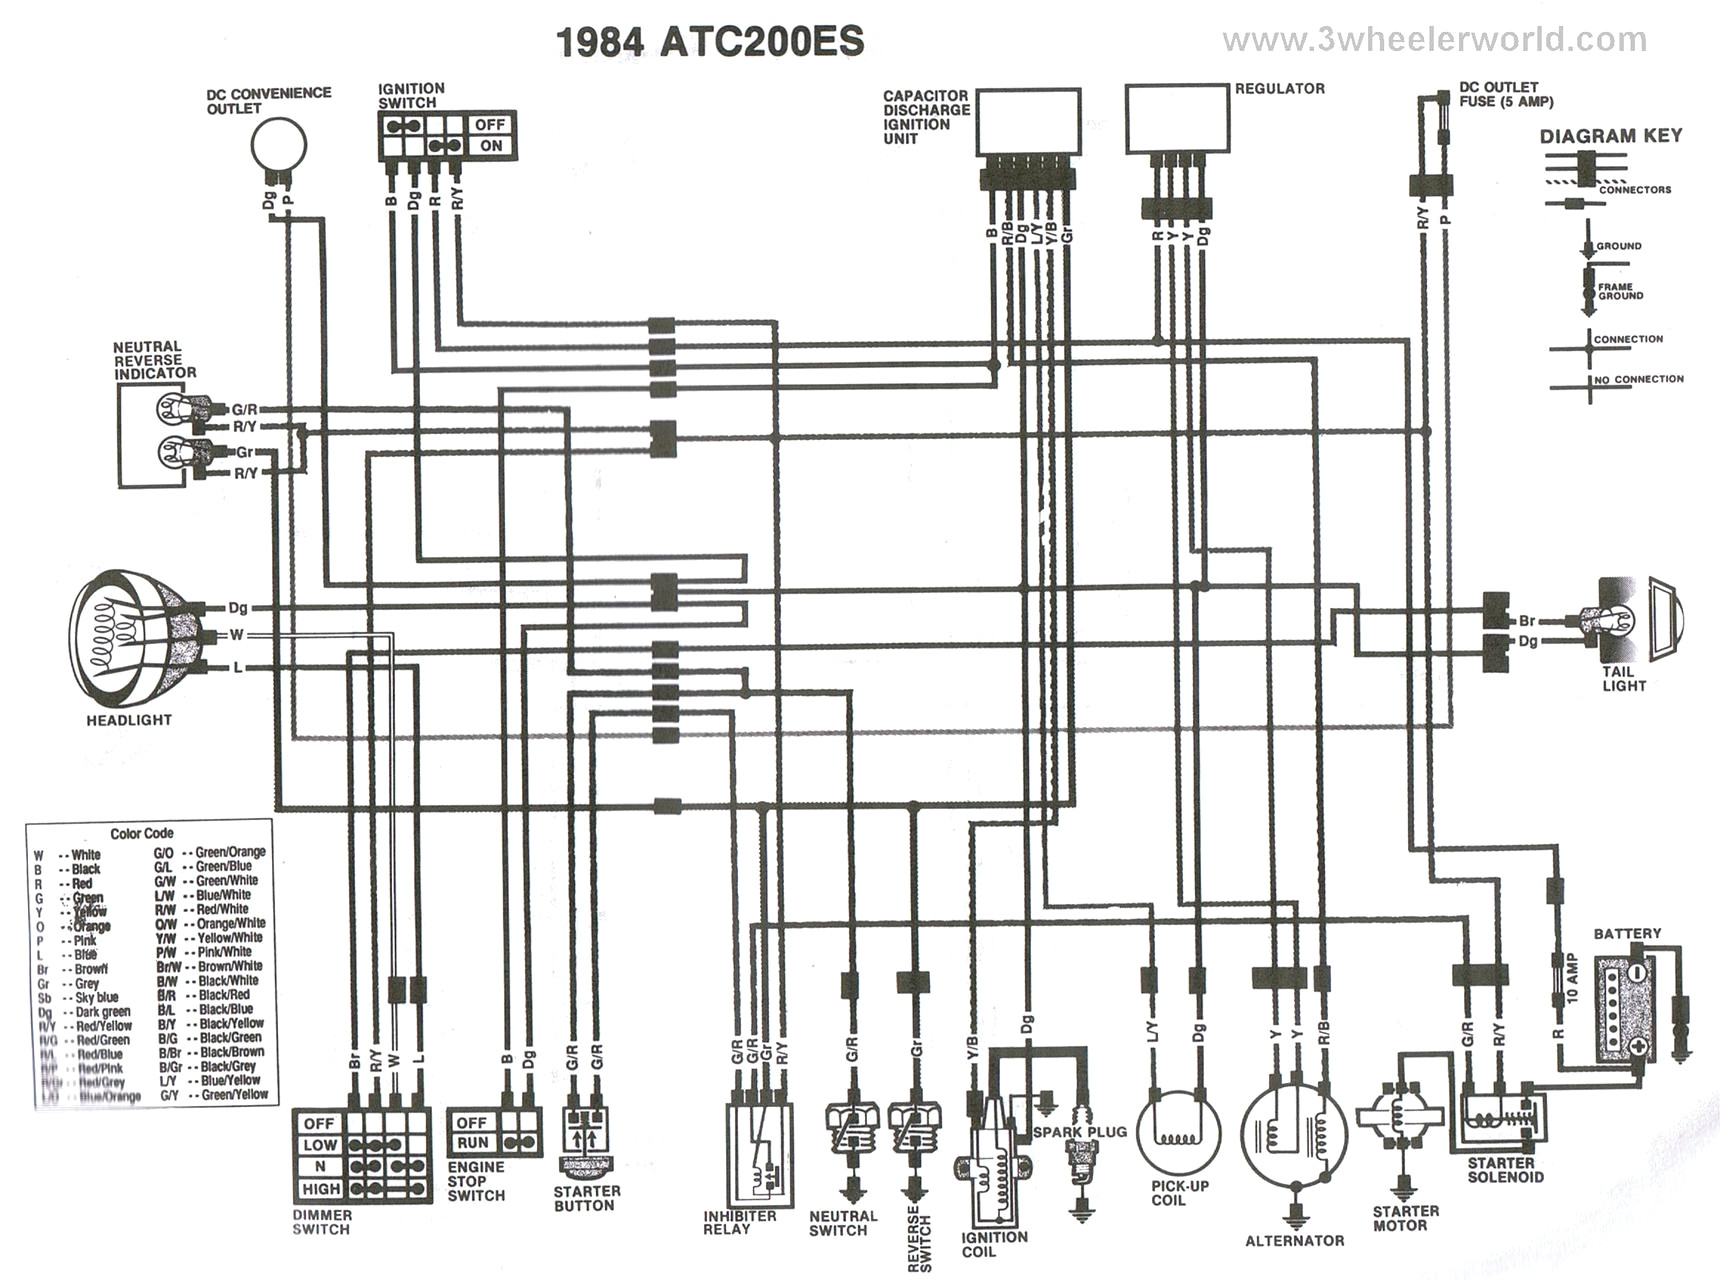 Wiring Diagram For 84 Honda Trx 200